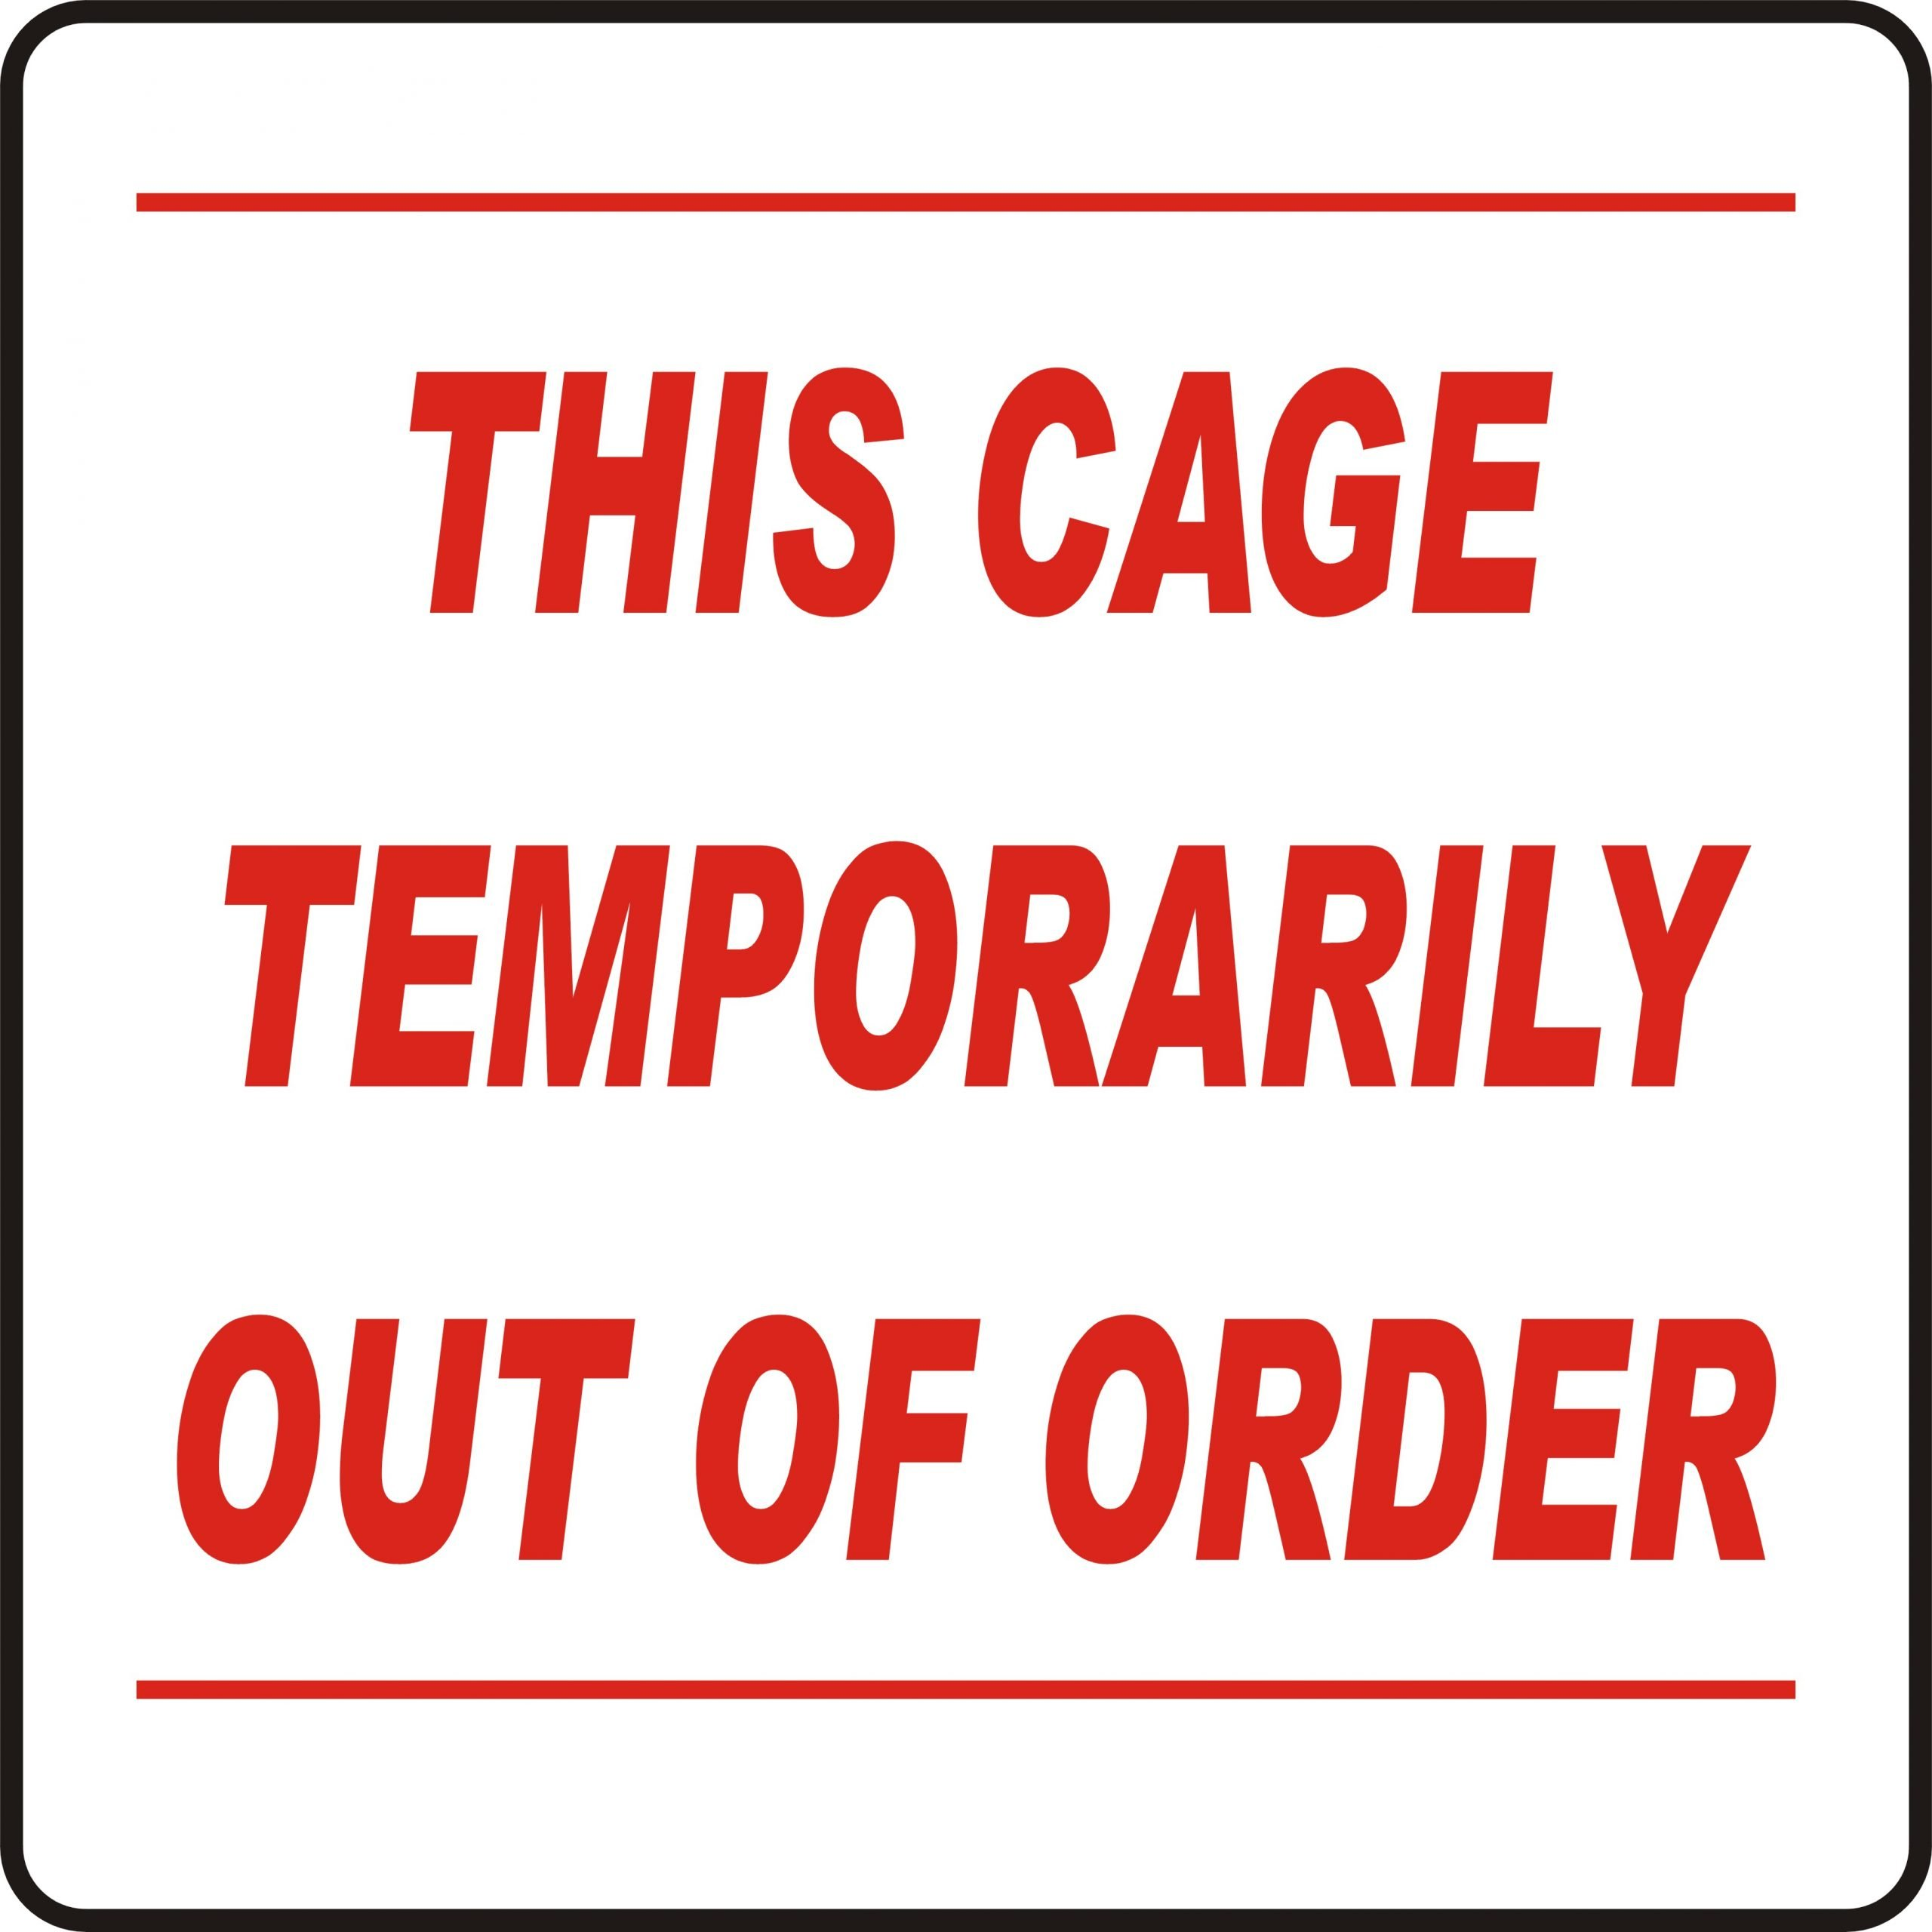 ABC Out of Order signs